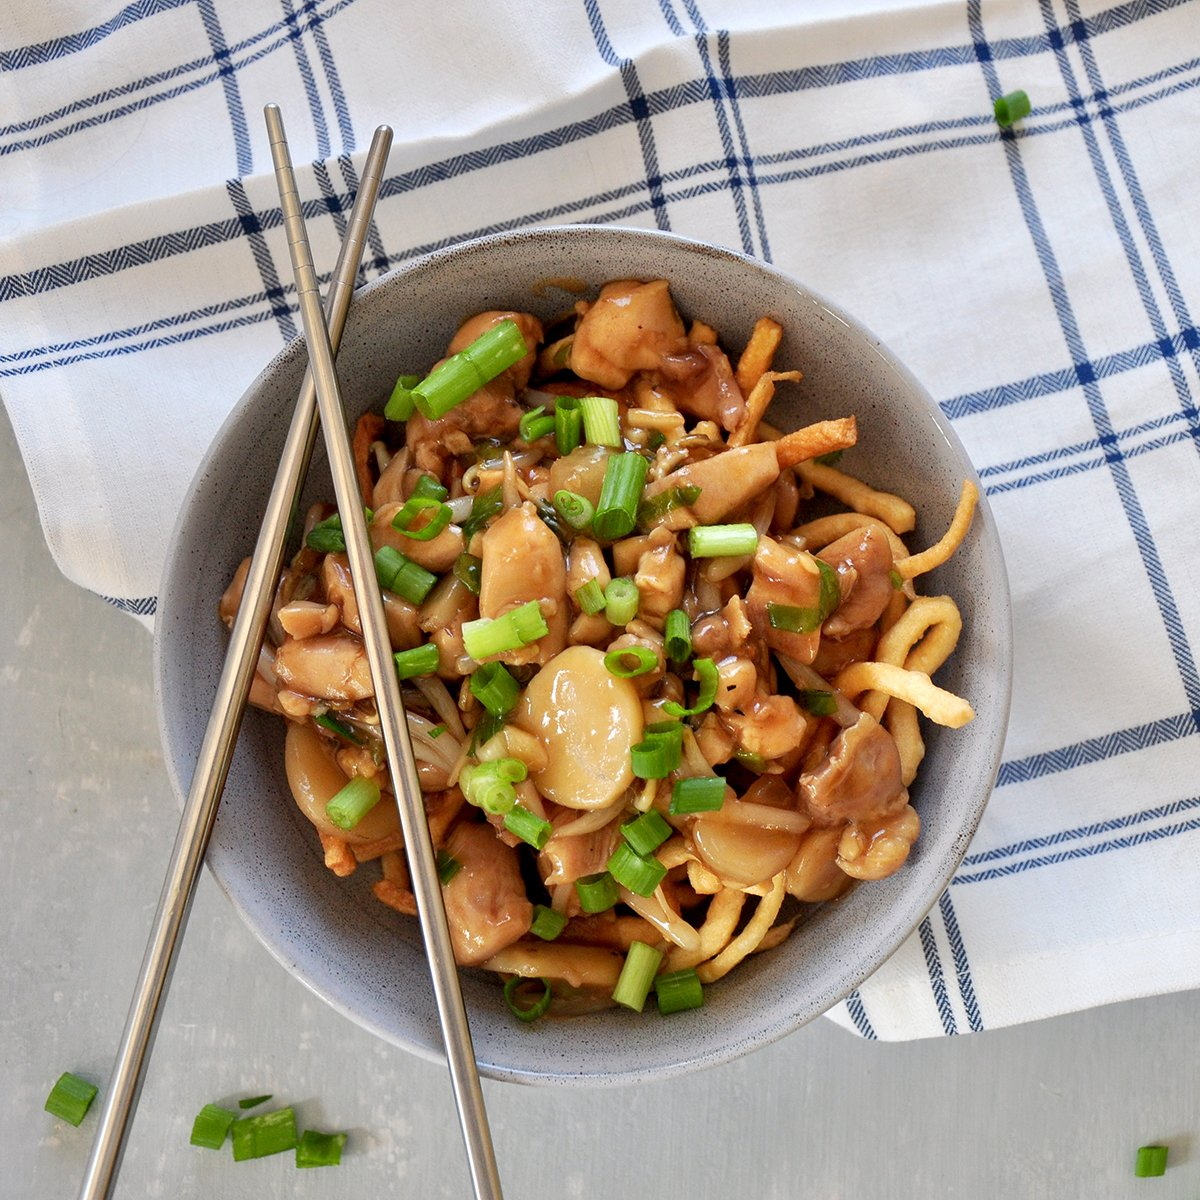 looking down on a bowl of crispy chicken chow mein in a grey bowl. There are chop sticks on top of the bowl, a plaid napkin is under the bowl. Green onions are on the table next to the bow.